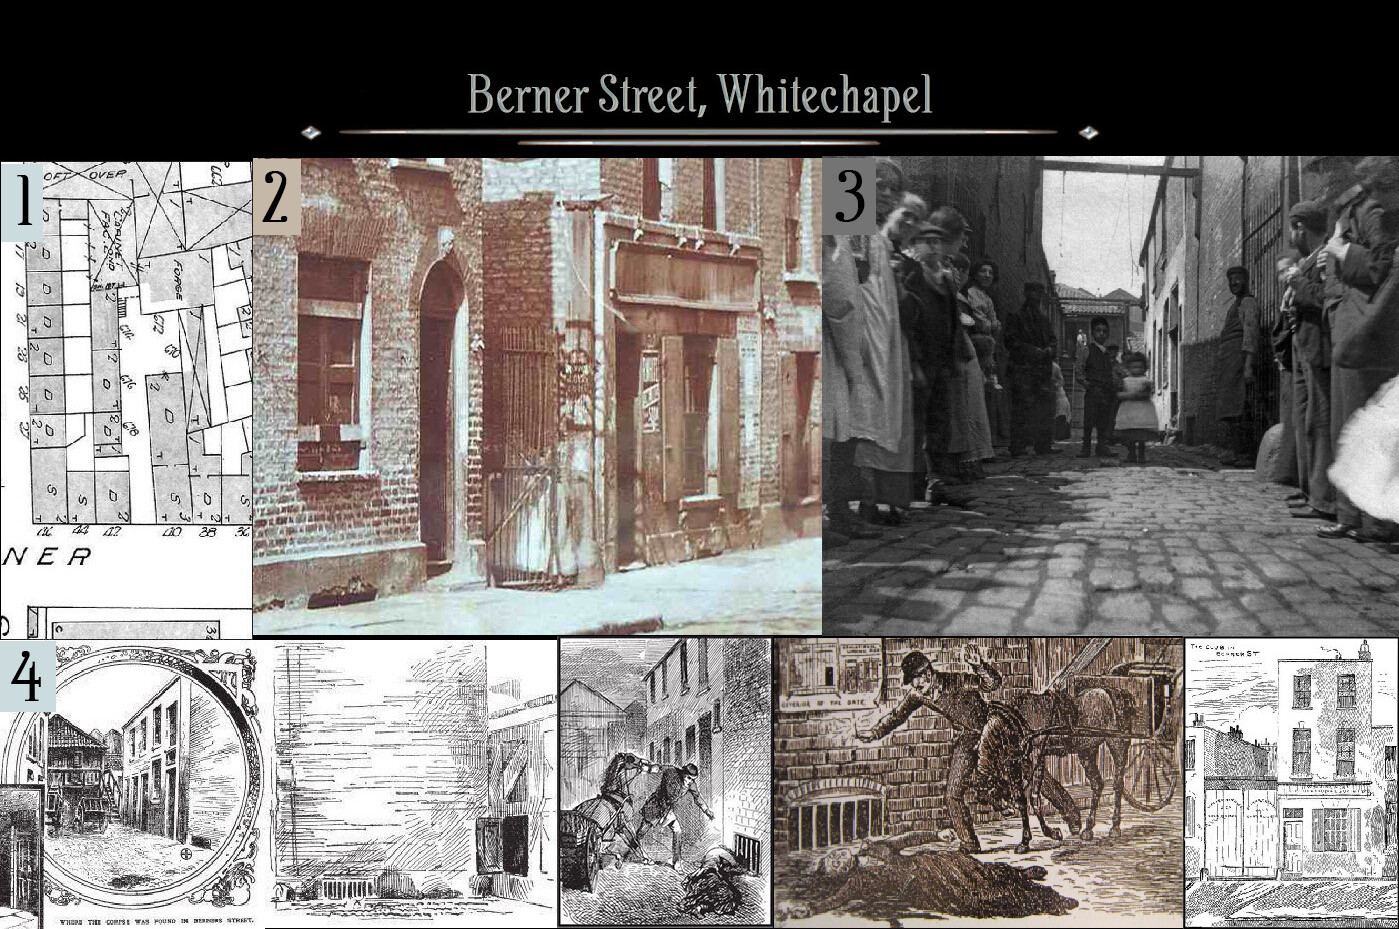 1. The original layout, which is now a carpark. 2. A photo of the alley in which Elizabeth Stride was murdered. 3. A view down the alley. 4. Various contemporary illustrations of the scene.